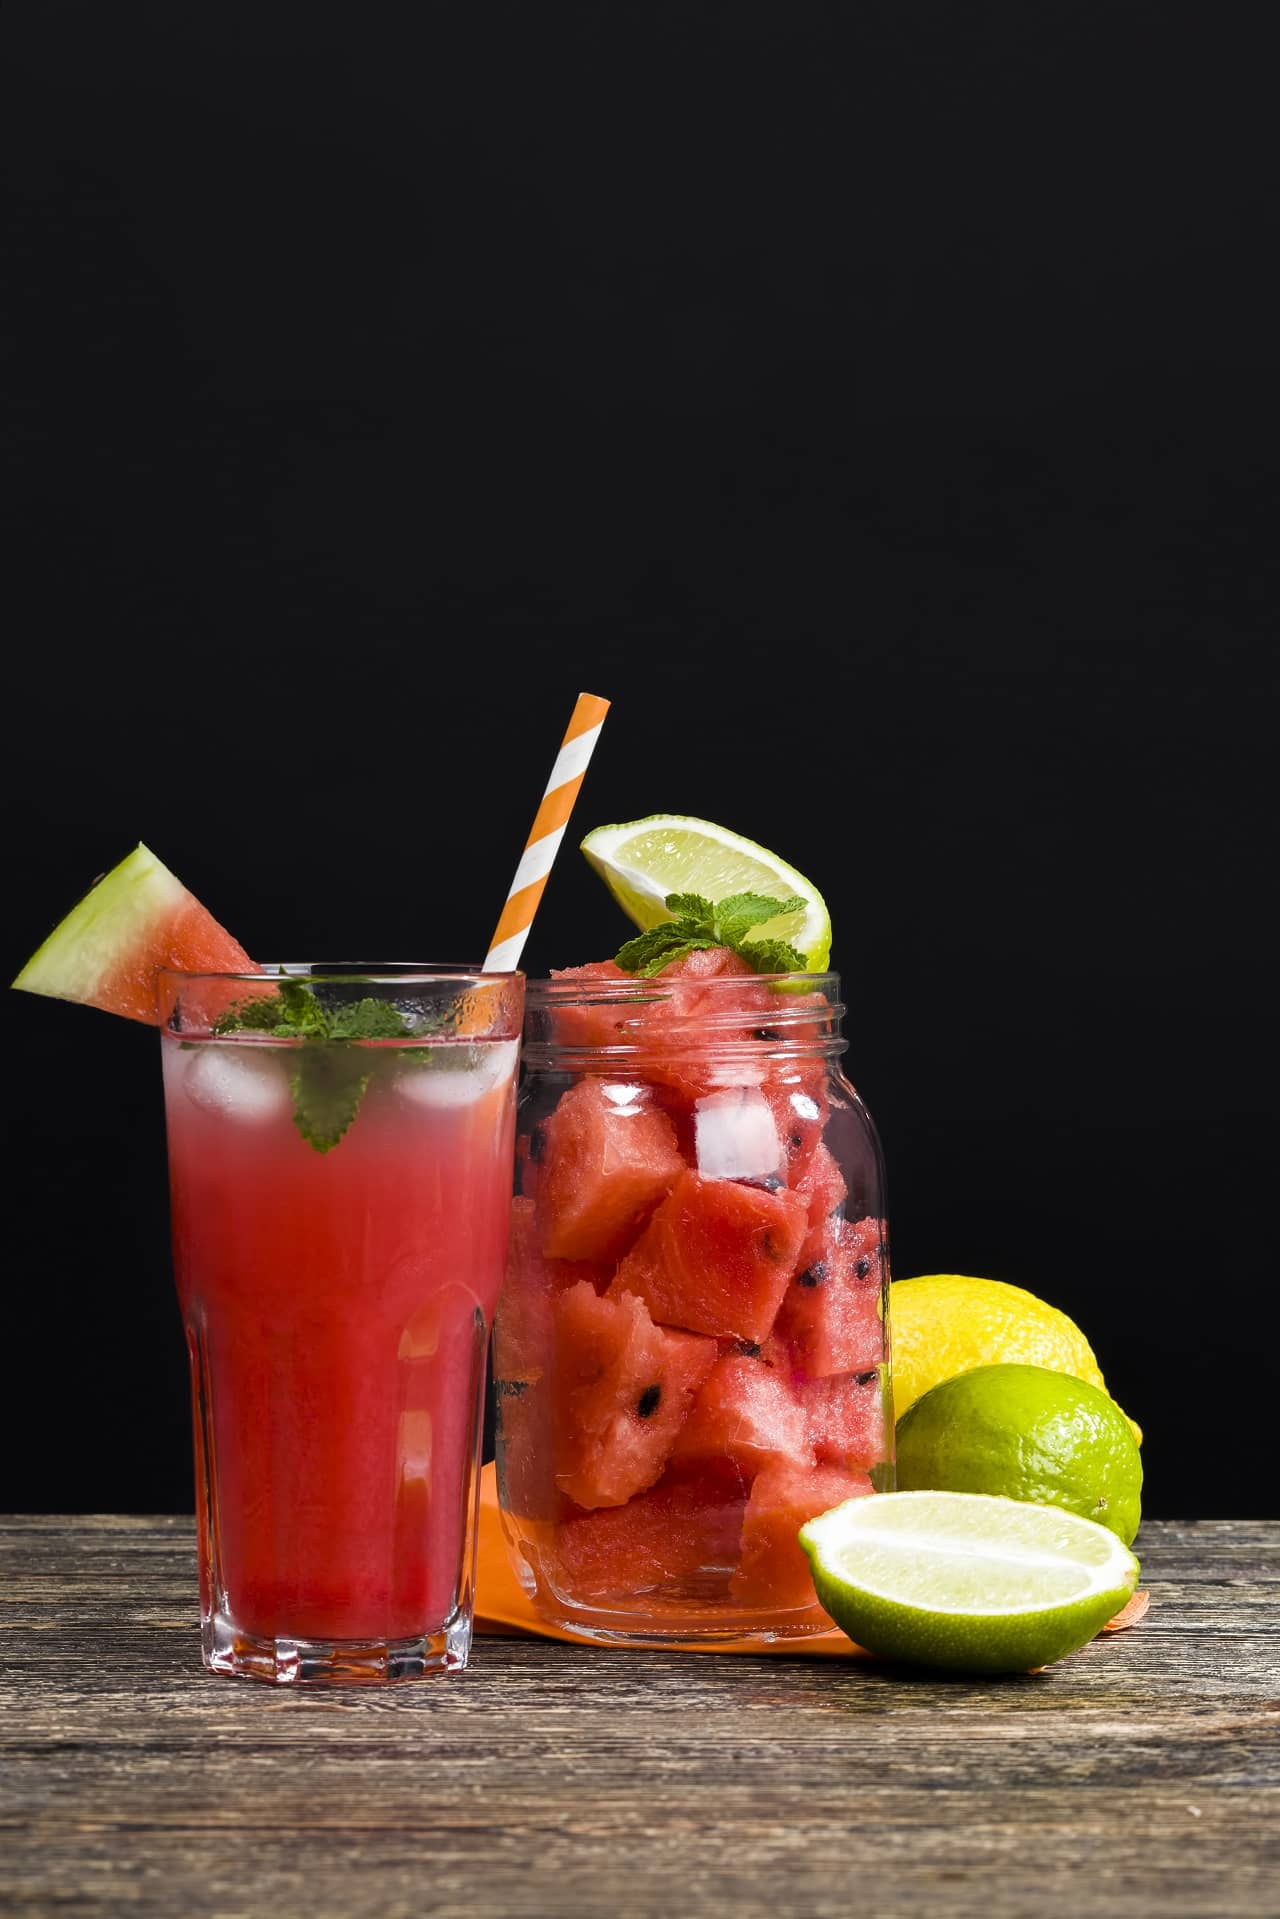 Sugar-free Drinks- Watermelon and Lime Juice